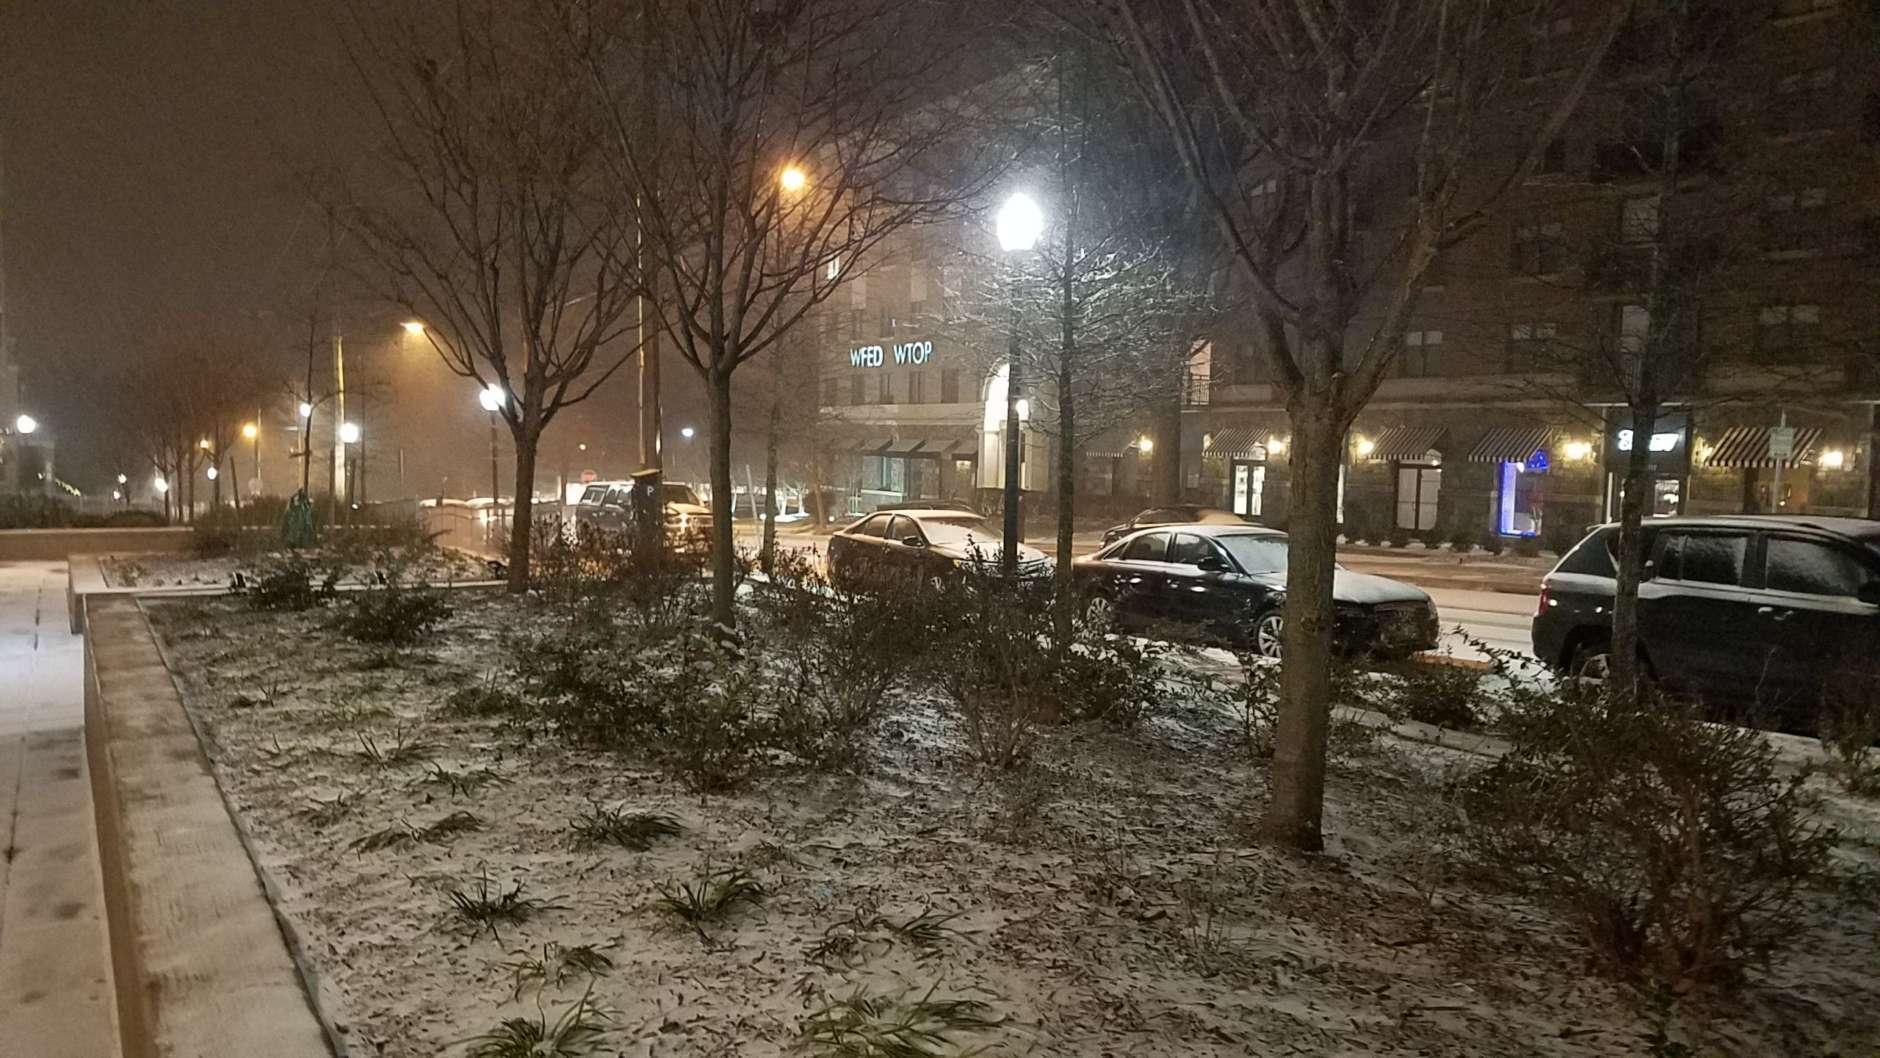 Snow falls outside the Glass-Enclosed Nerve Center in Northwest D.C. (WTOP/William Vitka)